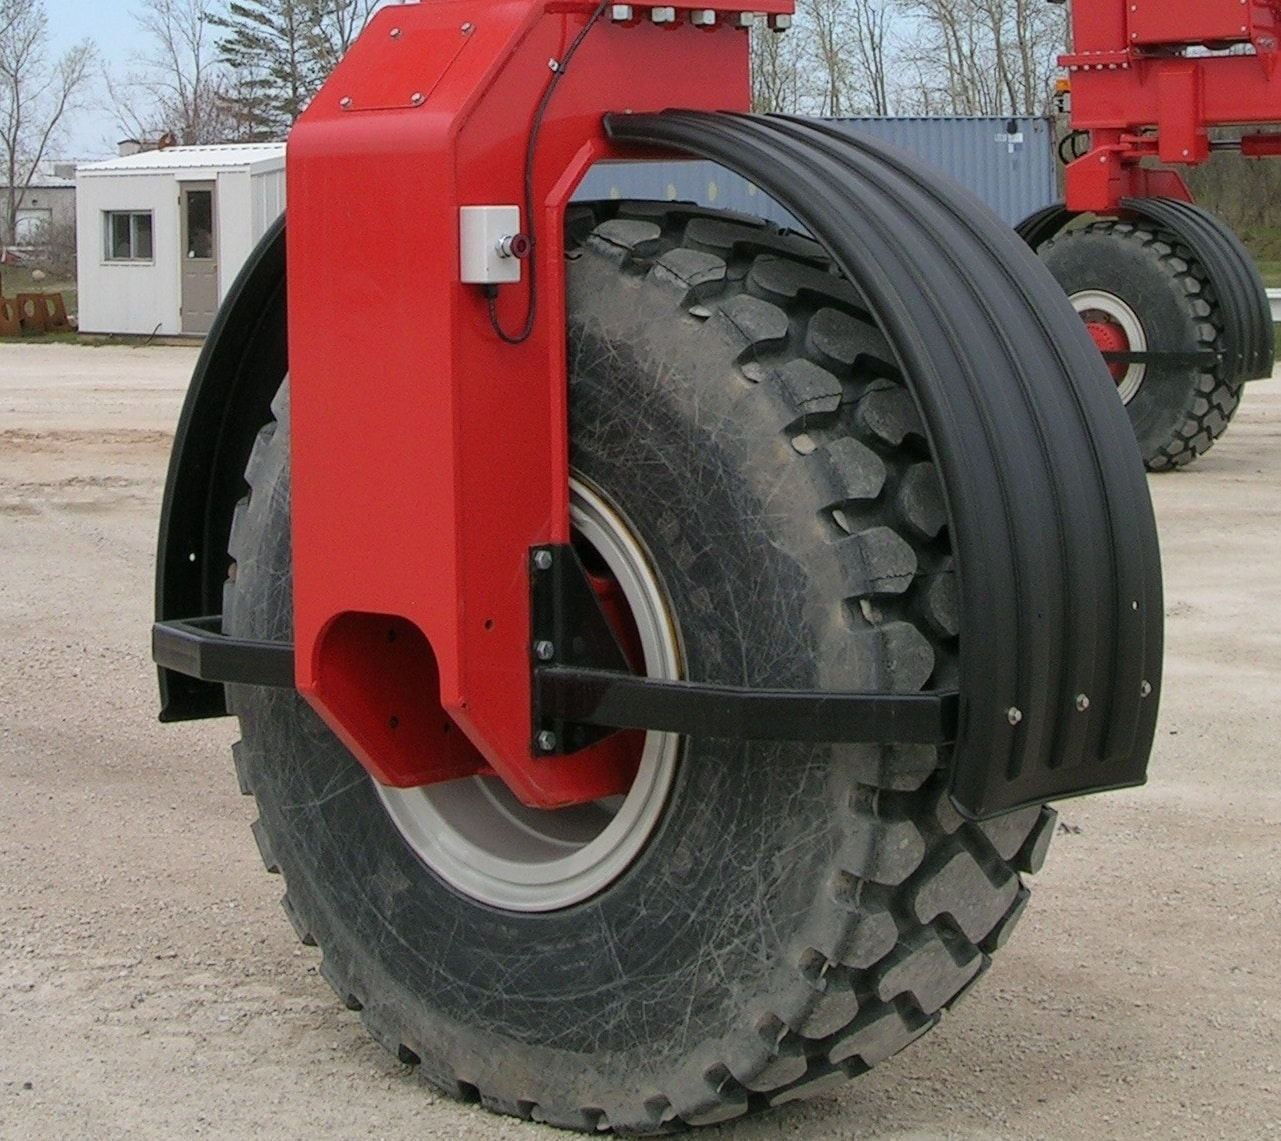 Industrial Tires on Crane for Material Handling